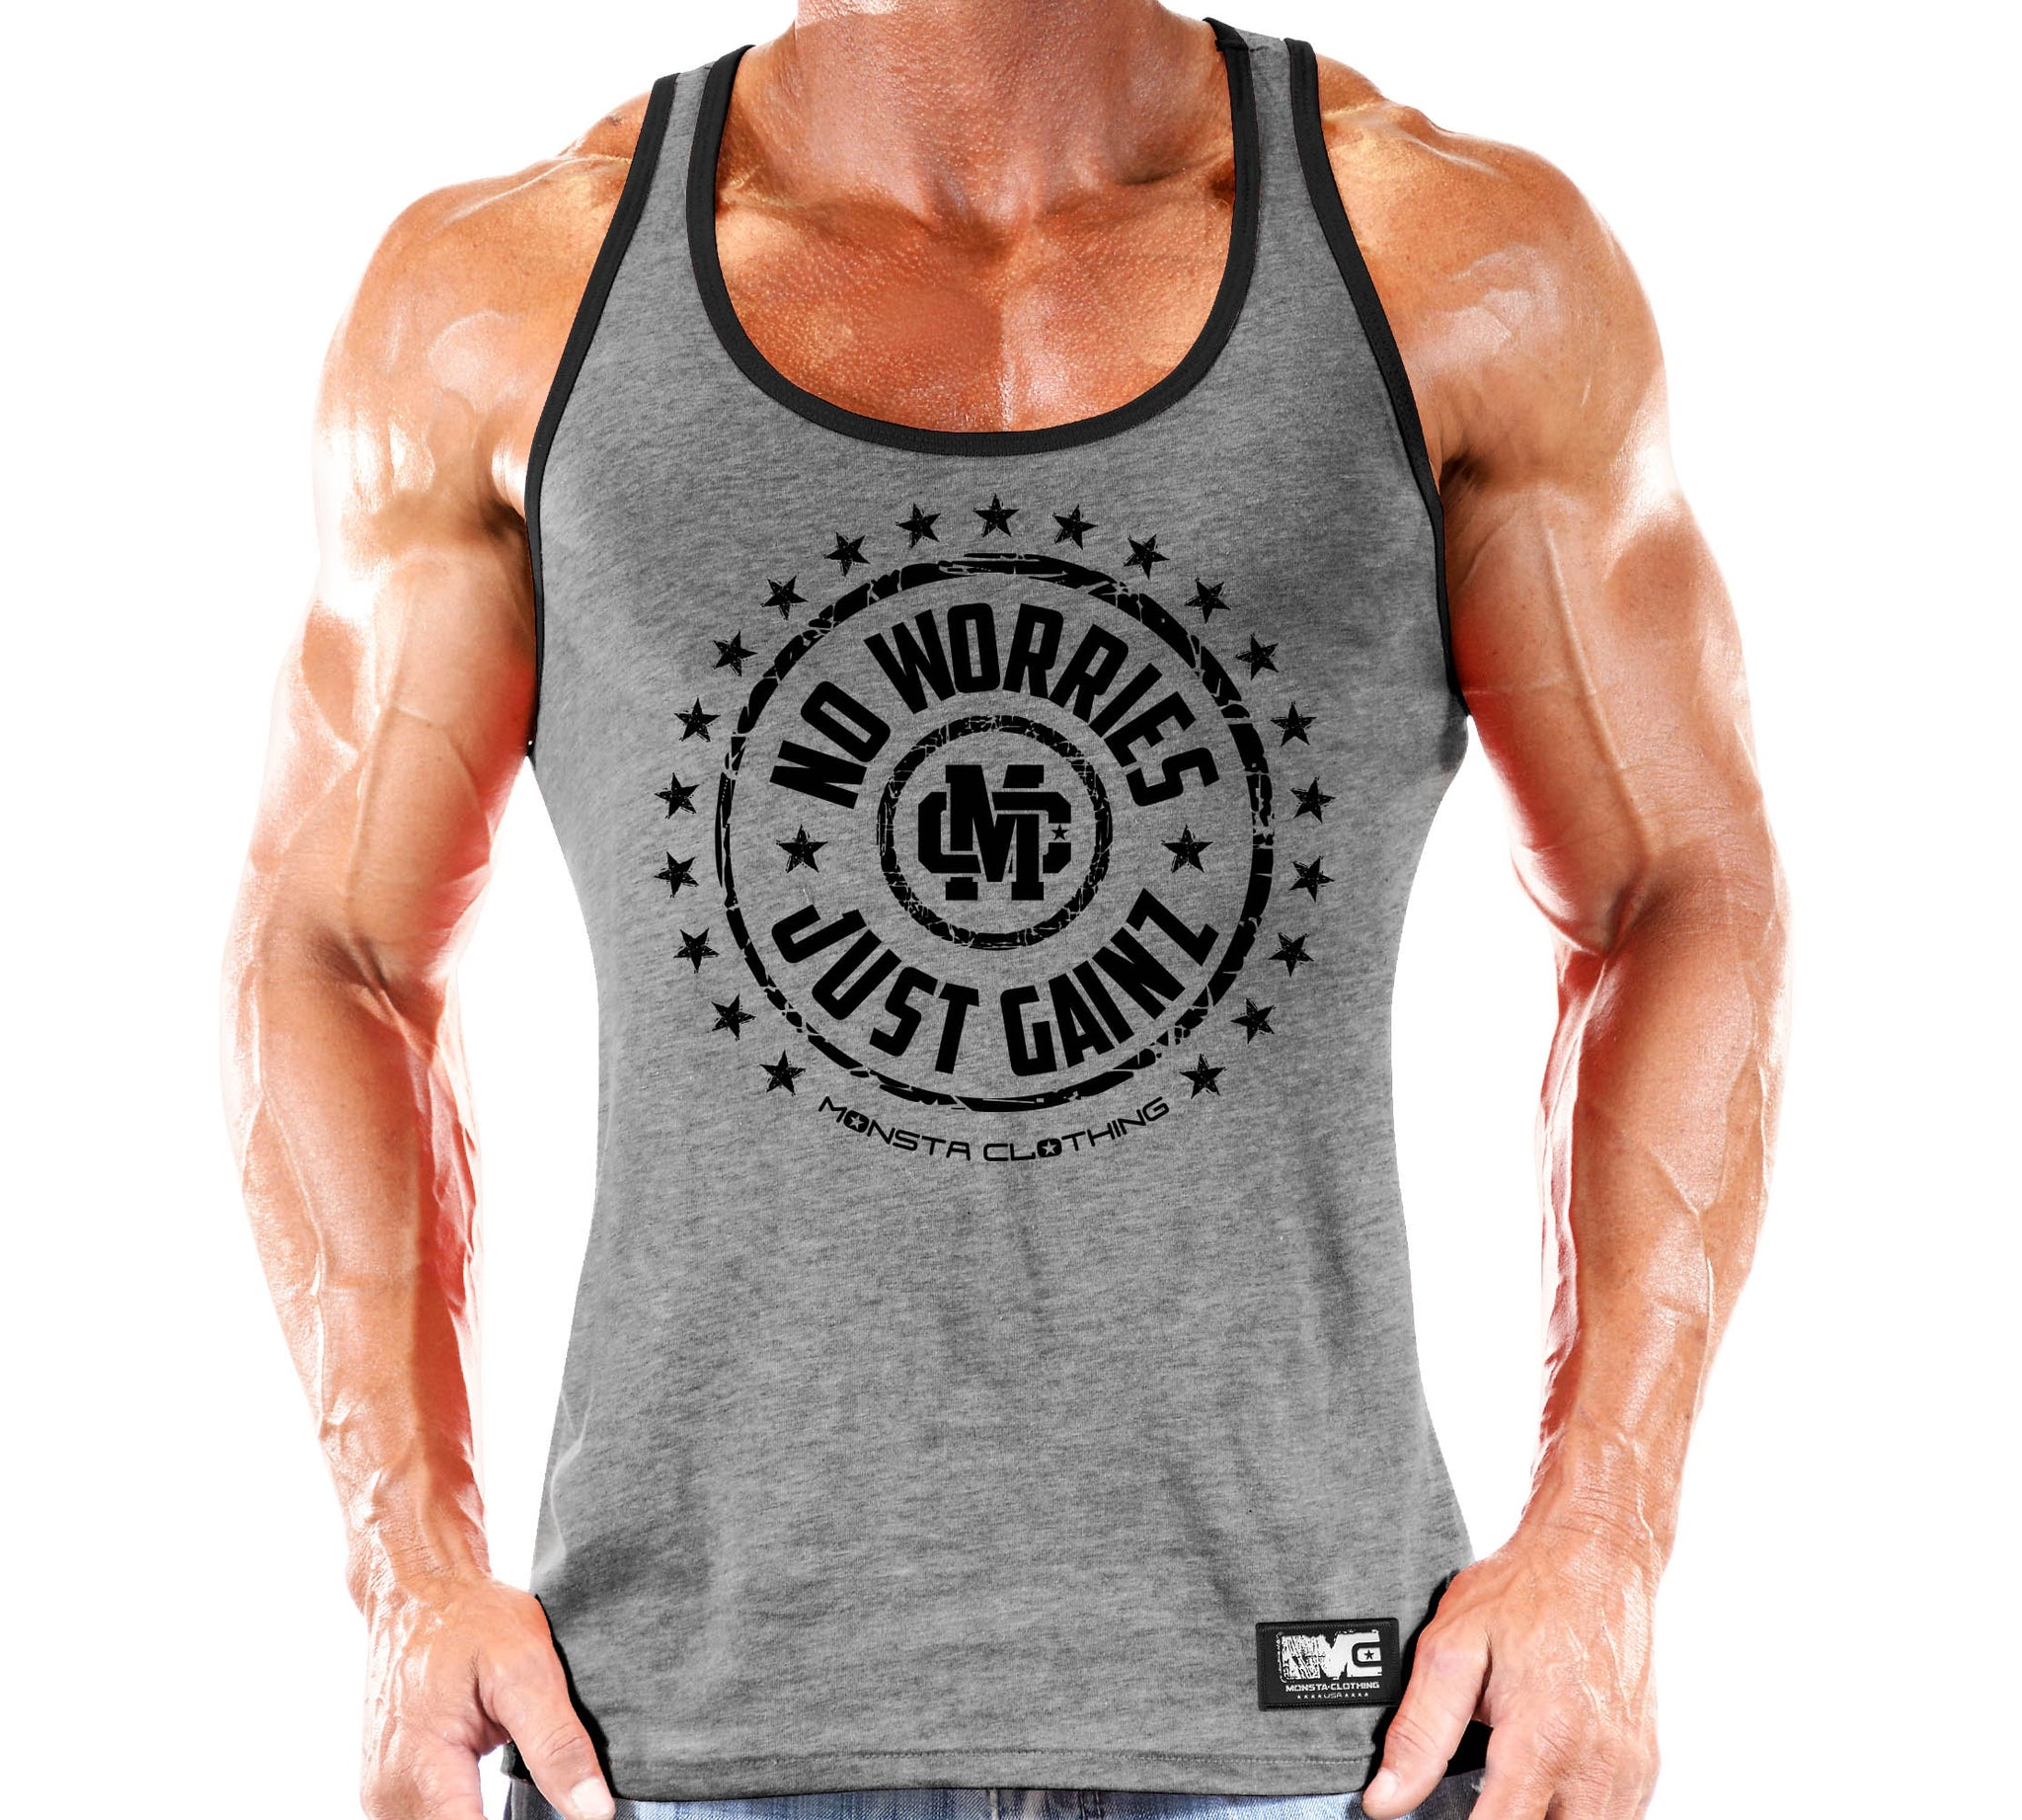 NO WORRIES JUST GAINZ TANK - Monsta Clothing Australia